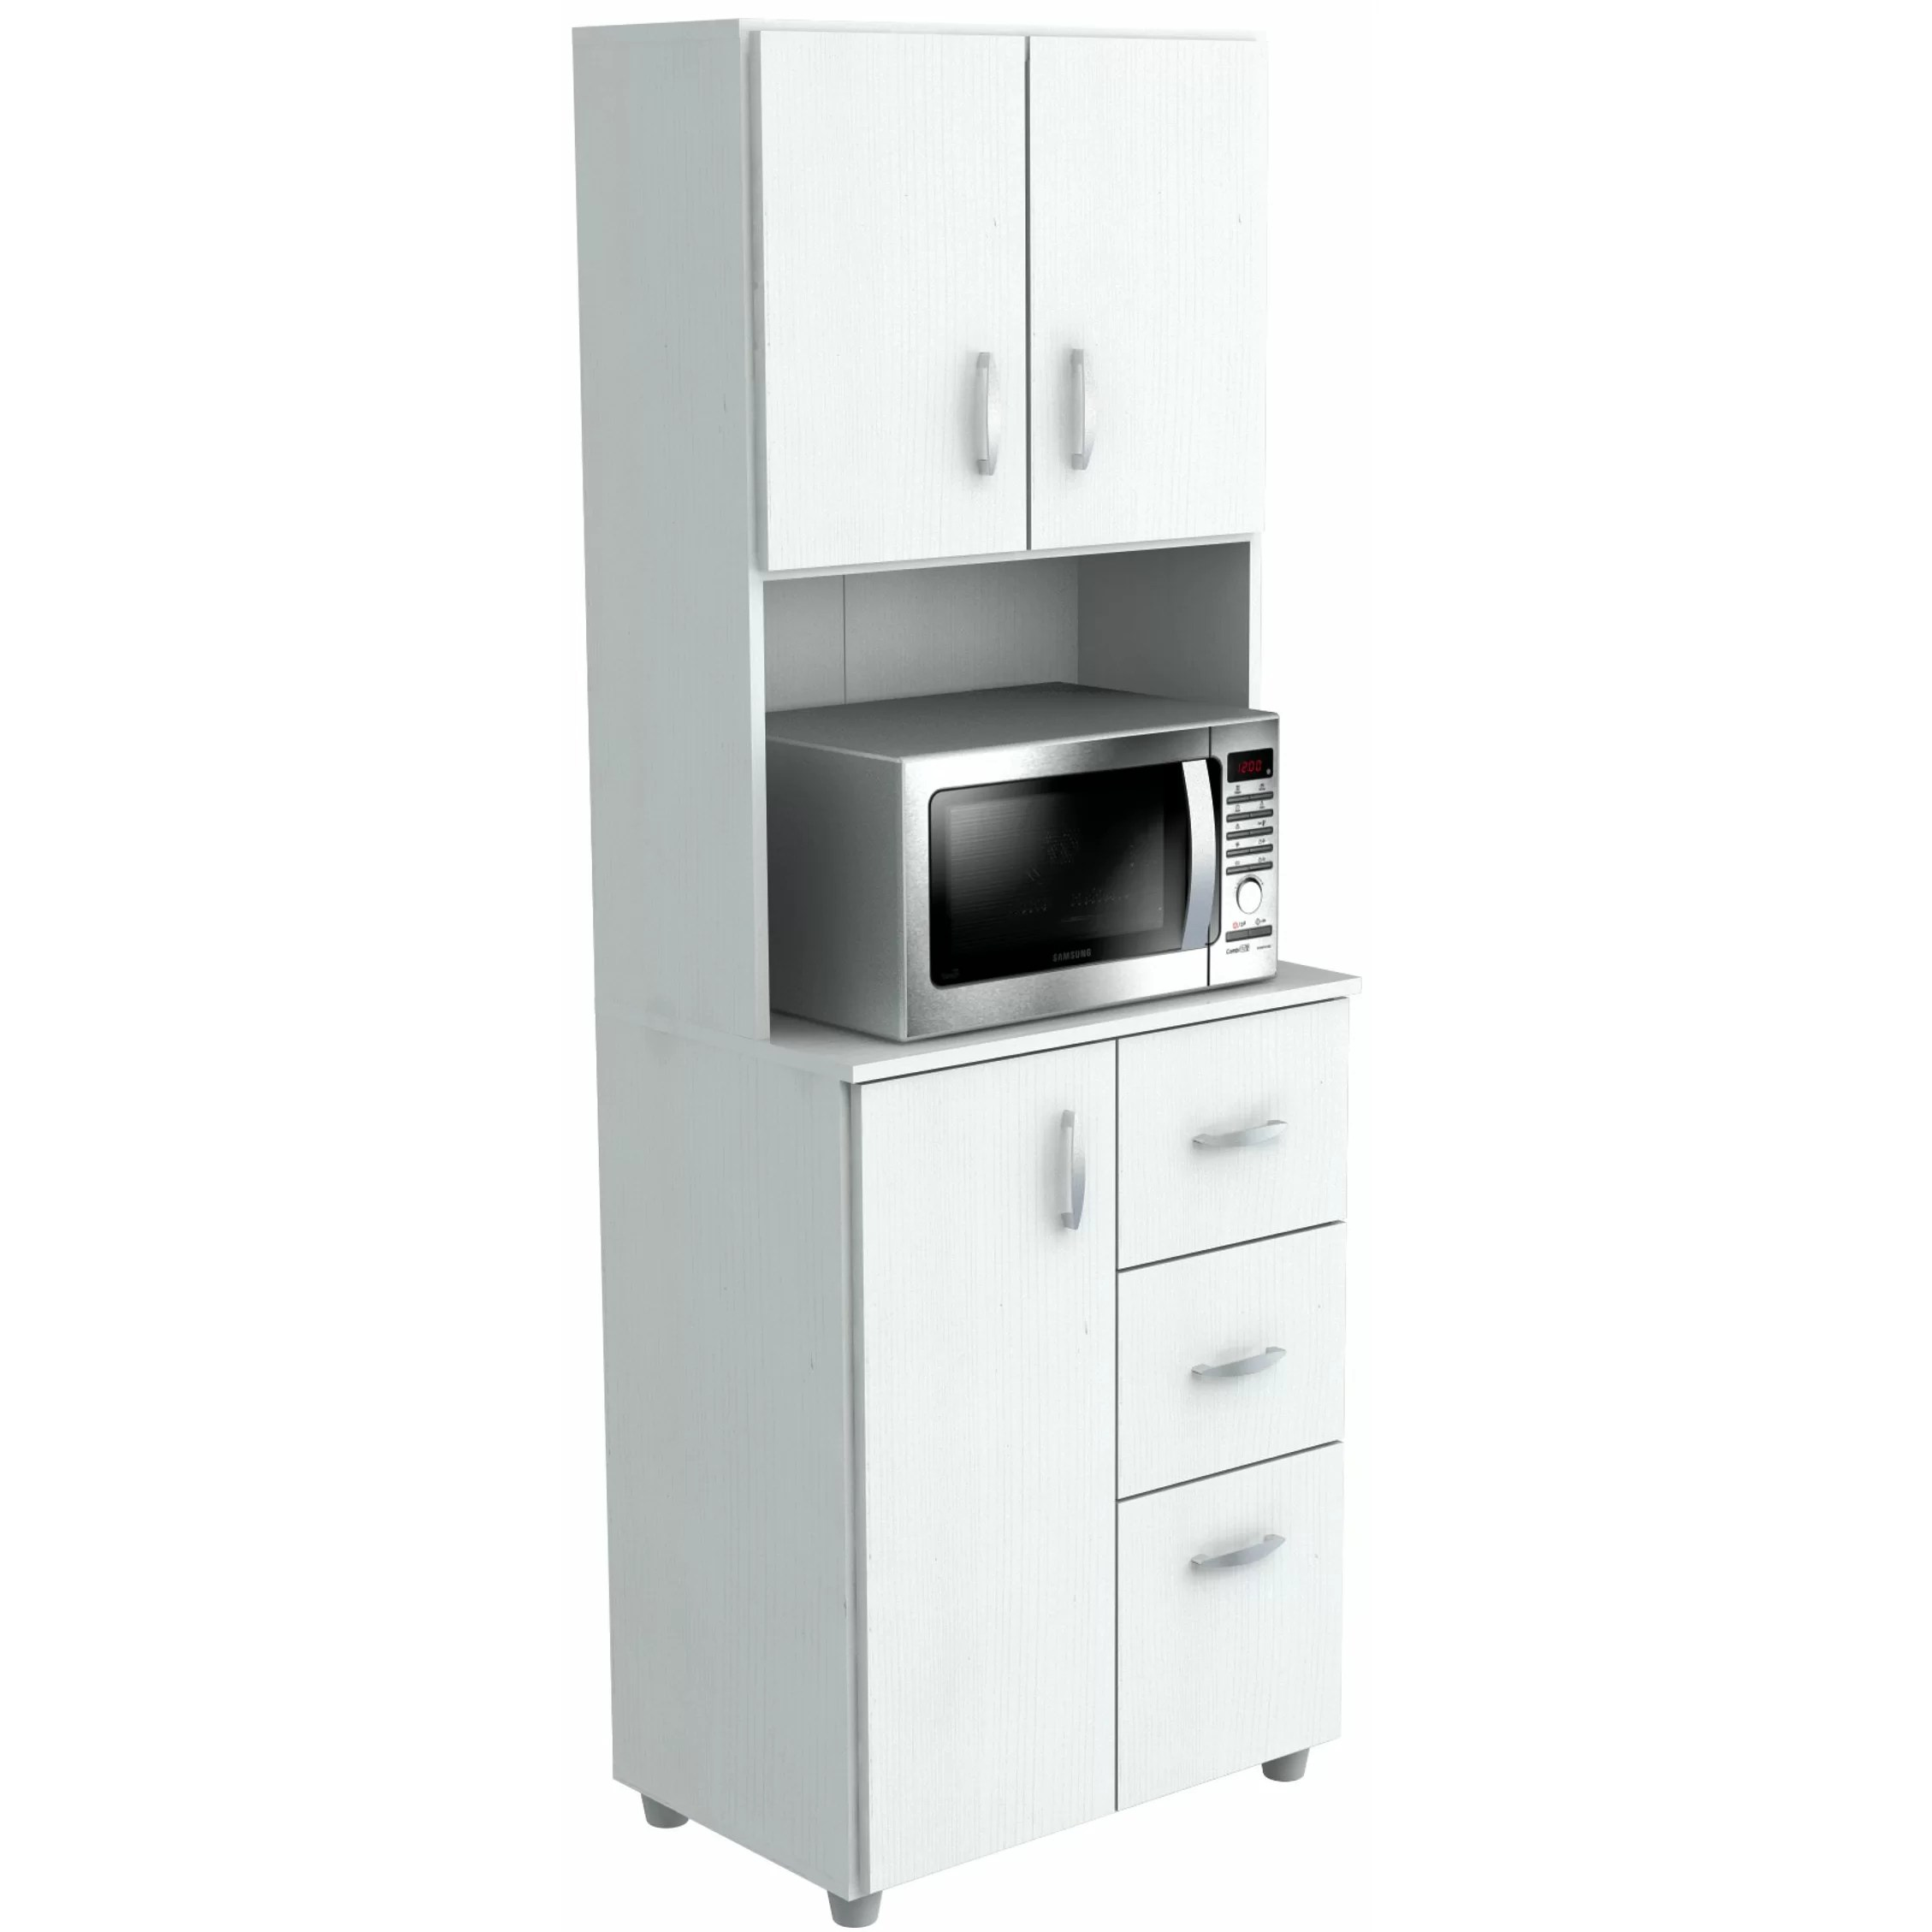 Inval Inval Kitchen Cabinet  Reviews  Wayfairca